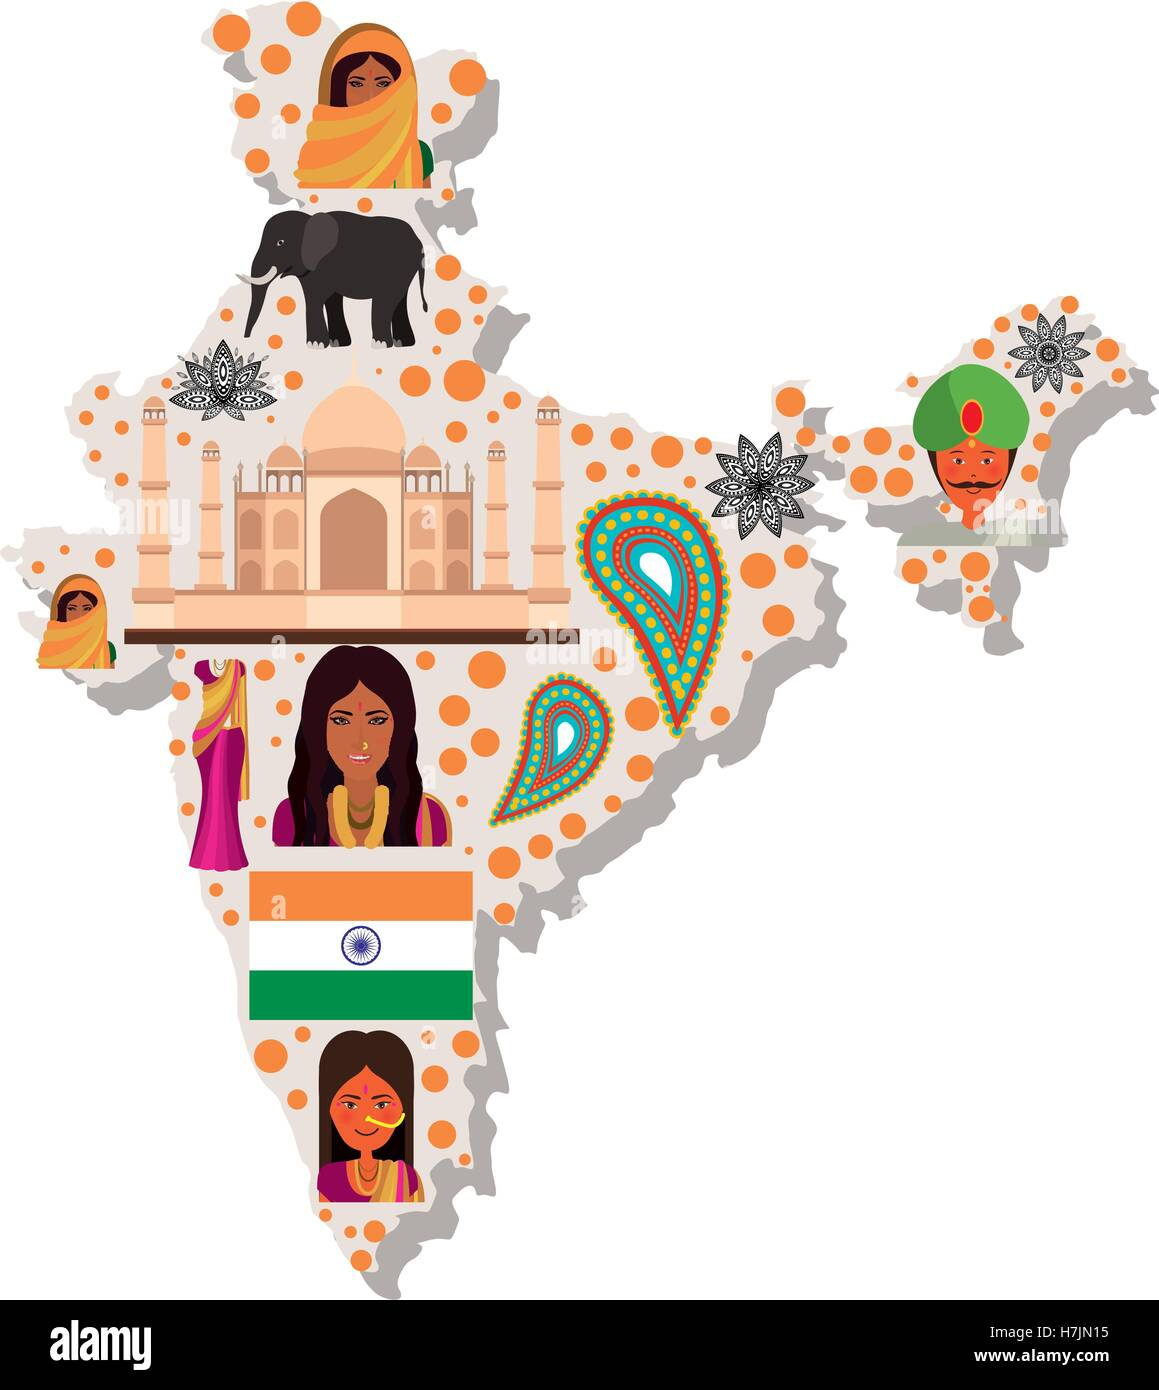 republic of india country map icon over white background. colorful ...